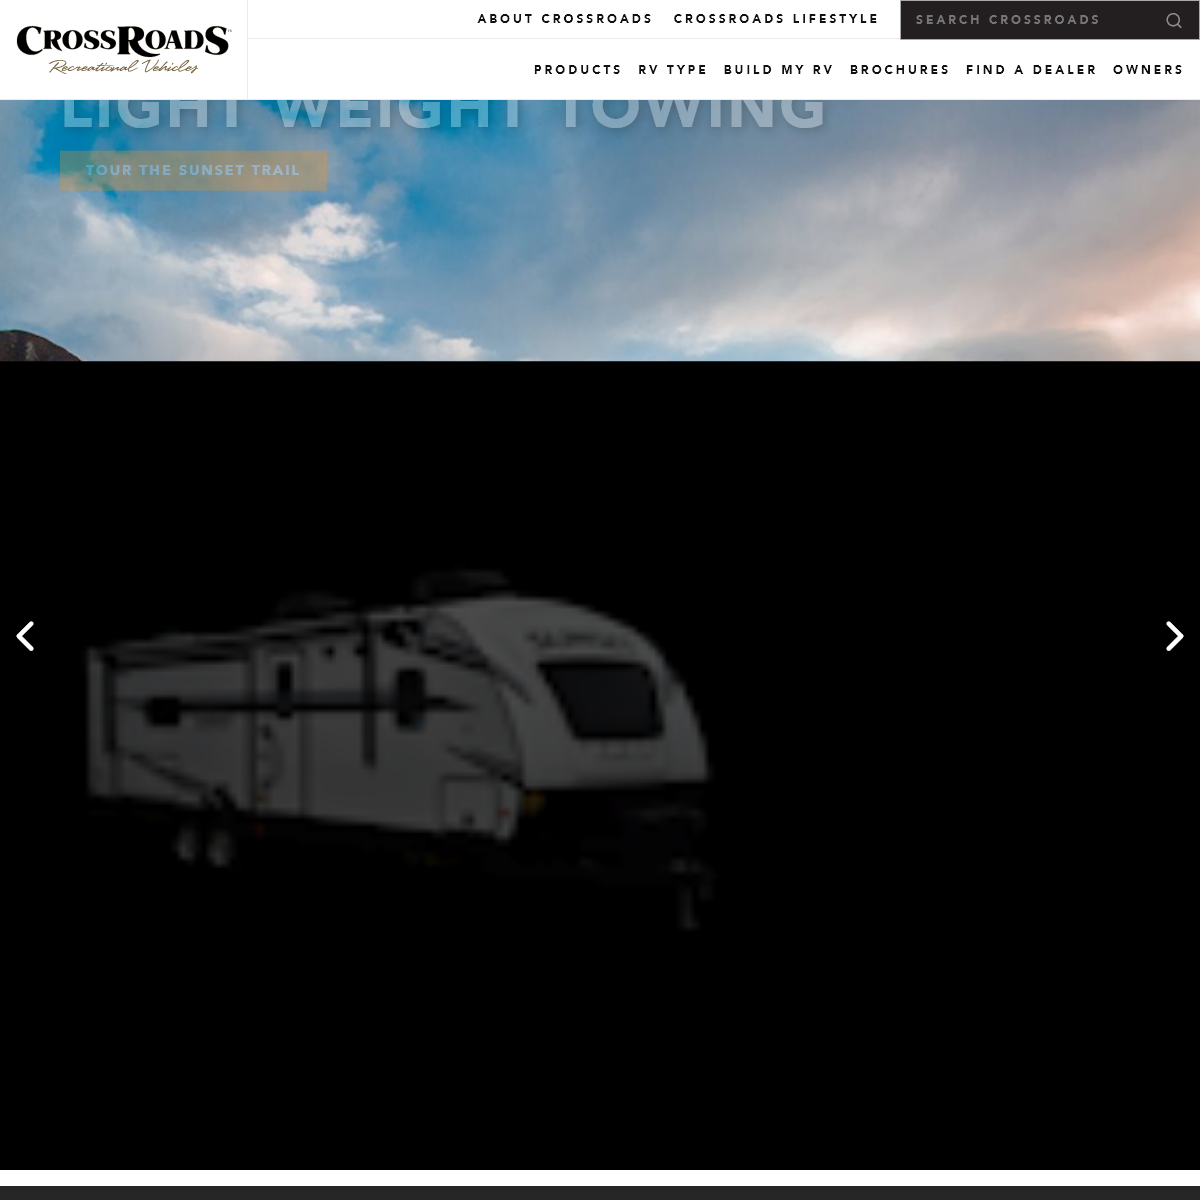 Crossroads RV - Travel Trailers, Fifth Wheels & Toy Haulers